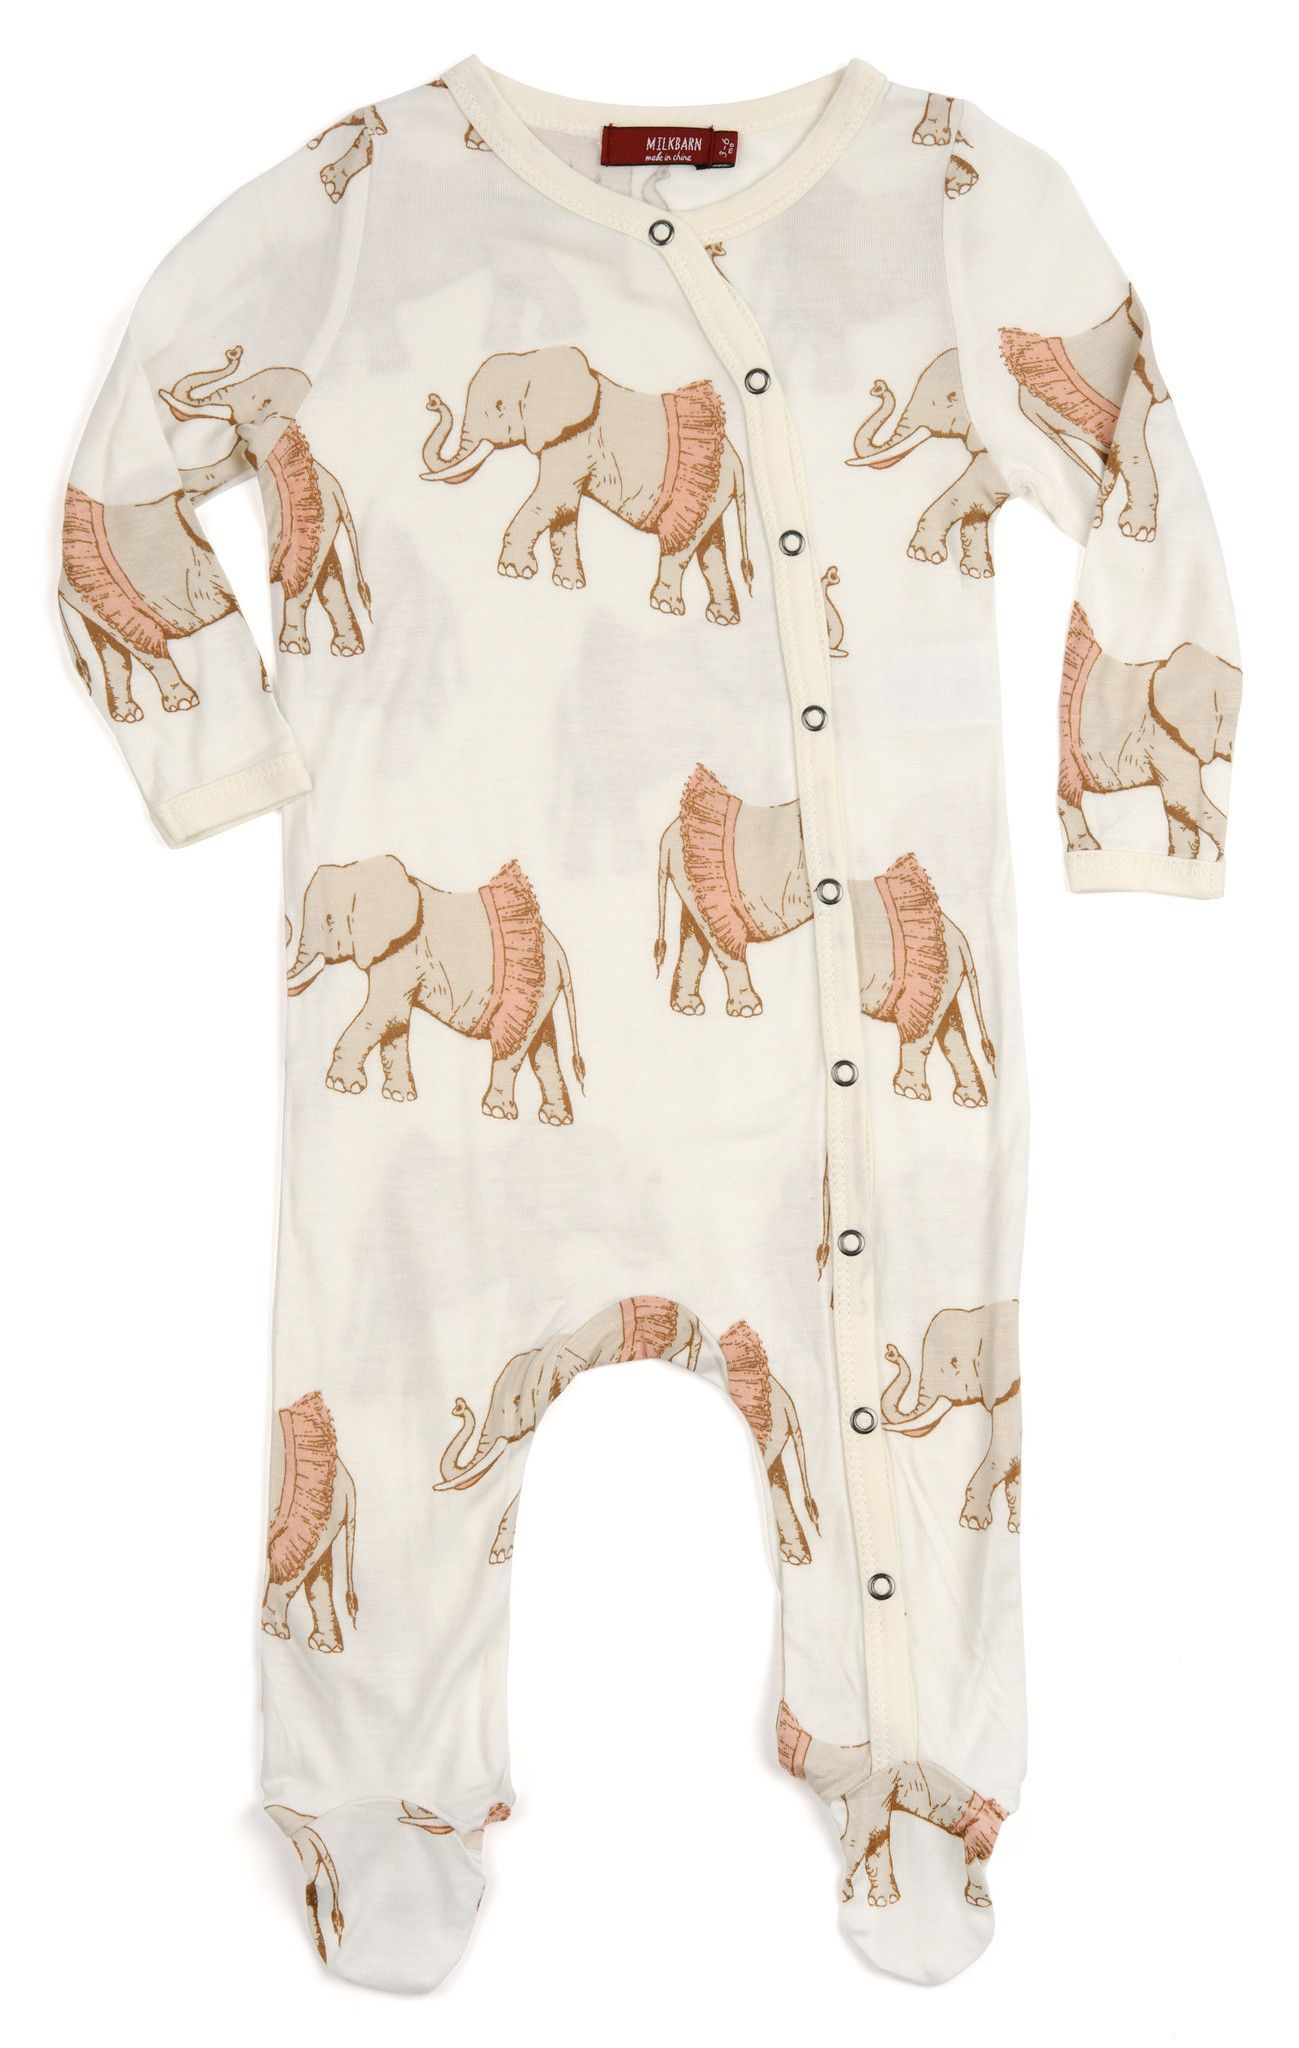 Milkbarn Infant Baby Footed Romper Yellow Giraffe 18-24 Months Brand New